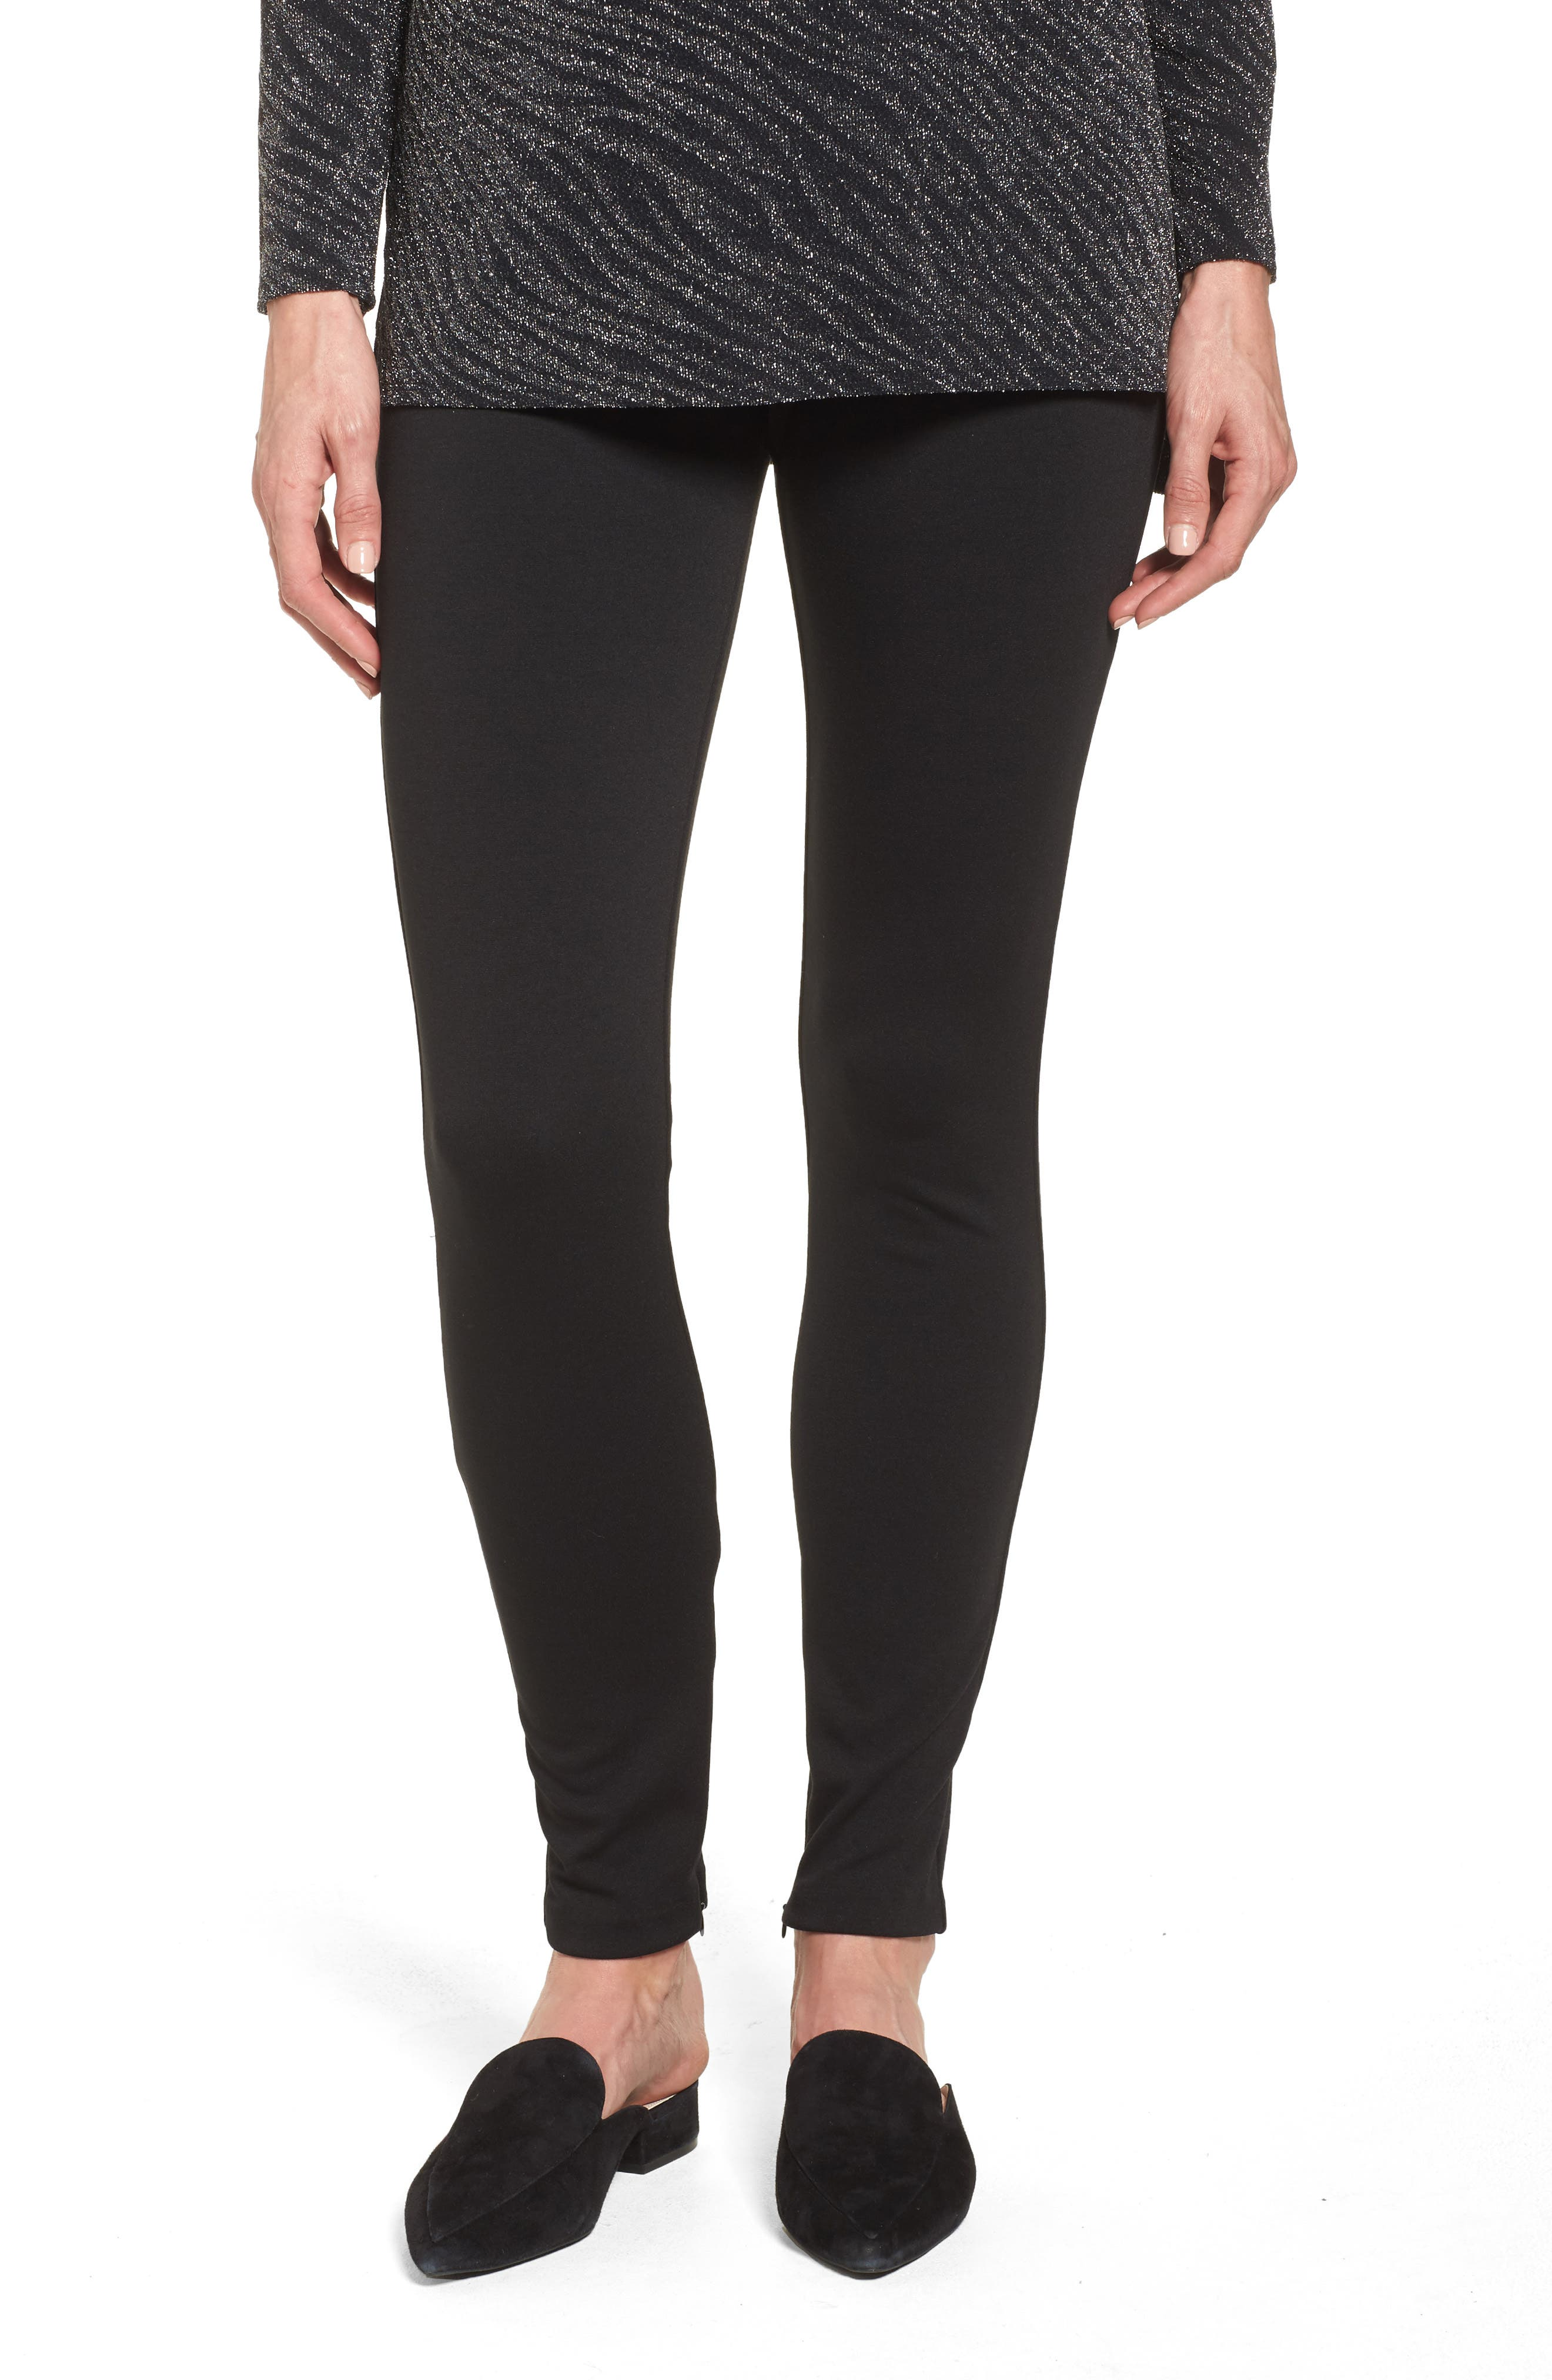 Alternate Image 1 Selected - Chaus Zip Ankle Ponte Knit Leggings